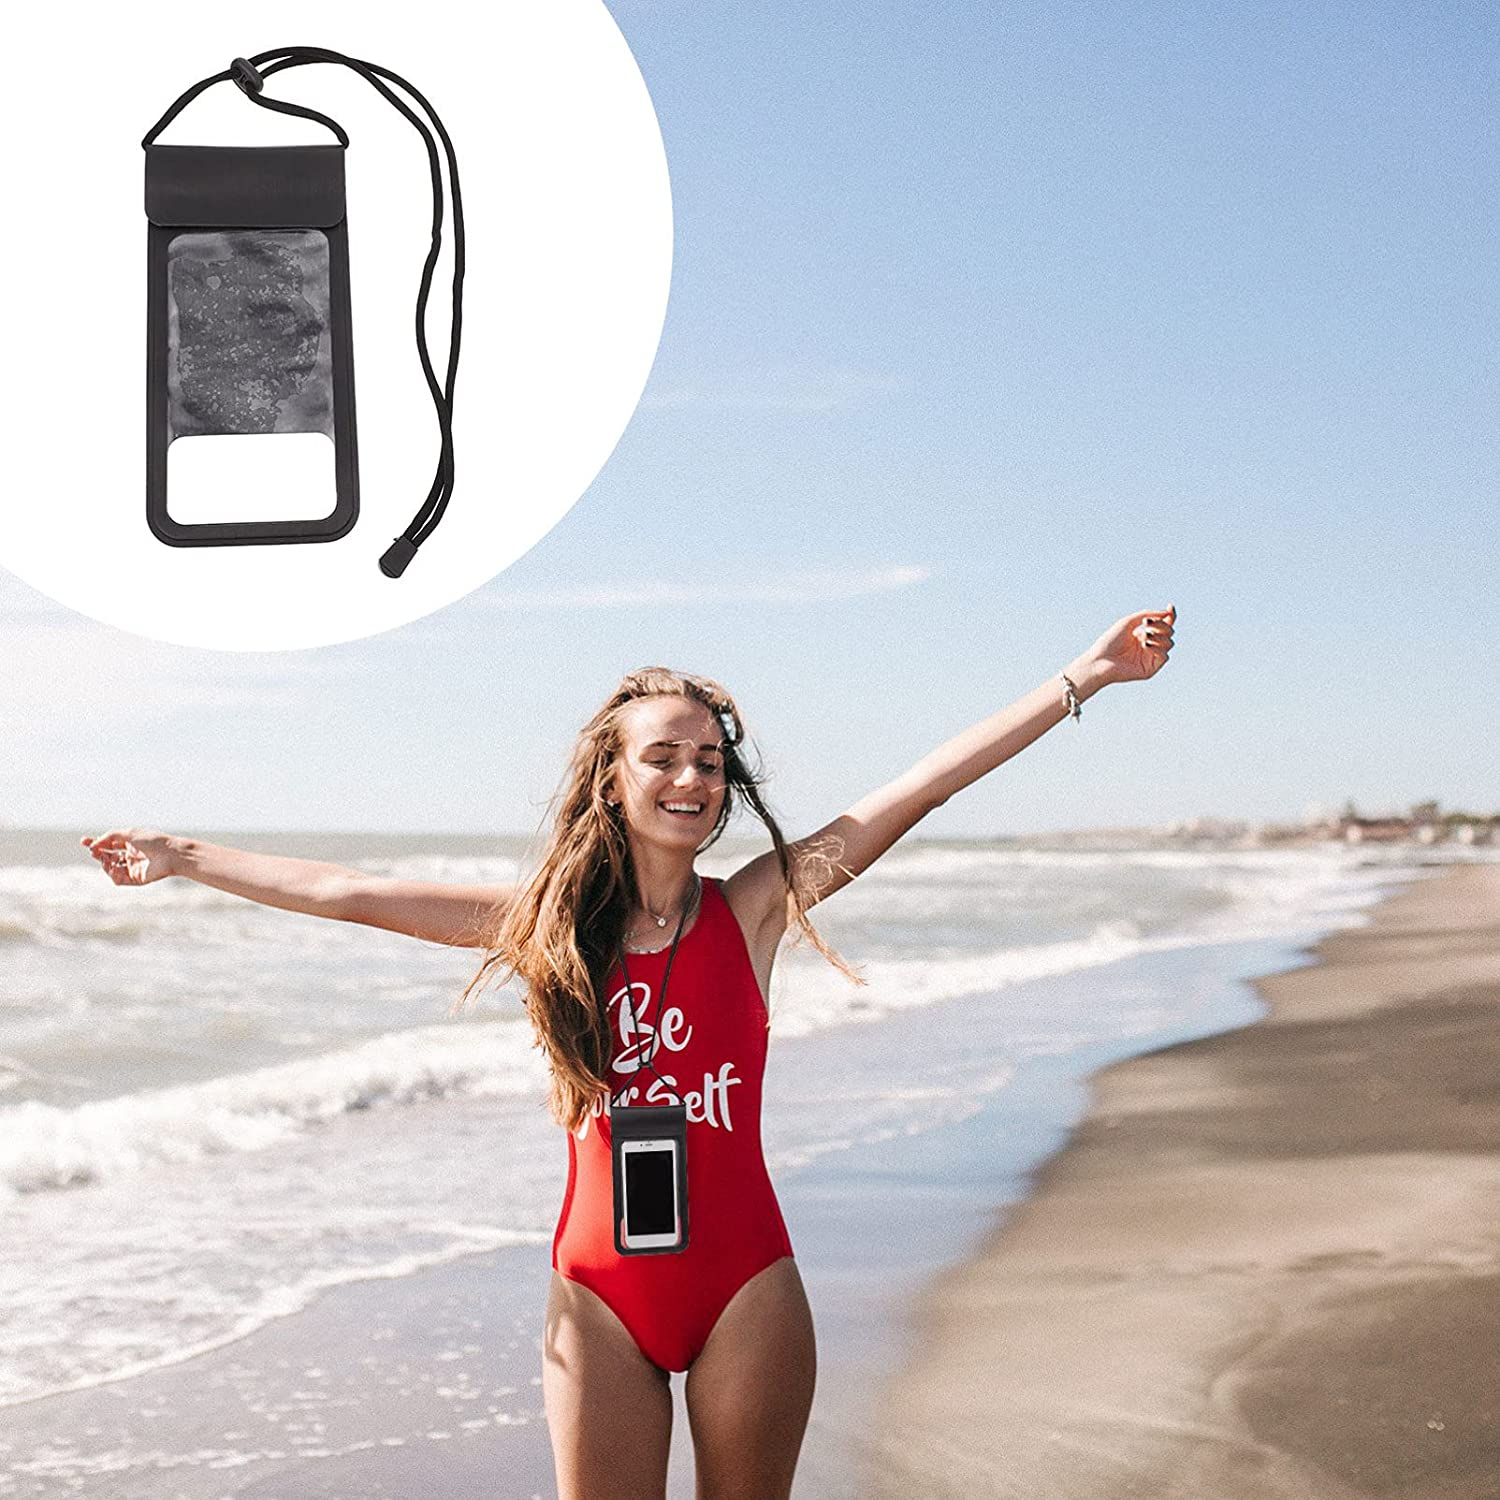 ifundom Waterproof Phone Pouch Cellphone Dry Bag Swimming Phone Holder for Kayak Travel Boating Fishing Hiking with Lanyard Black